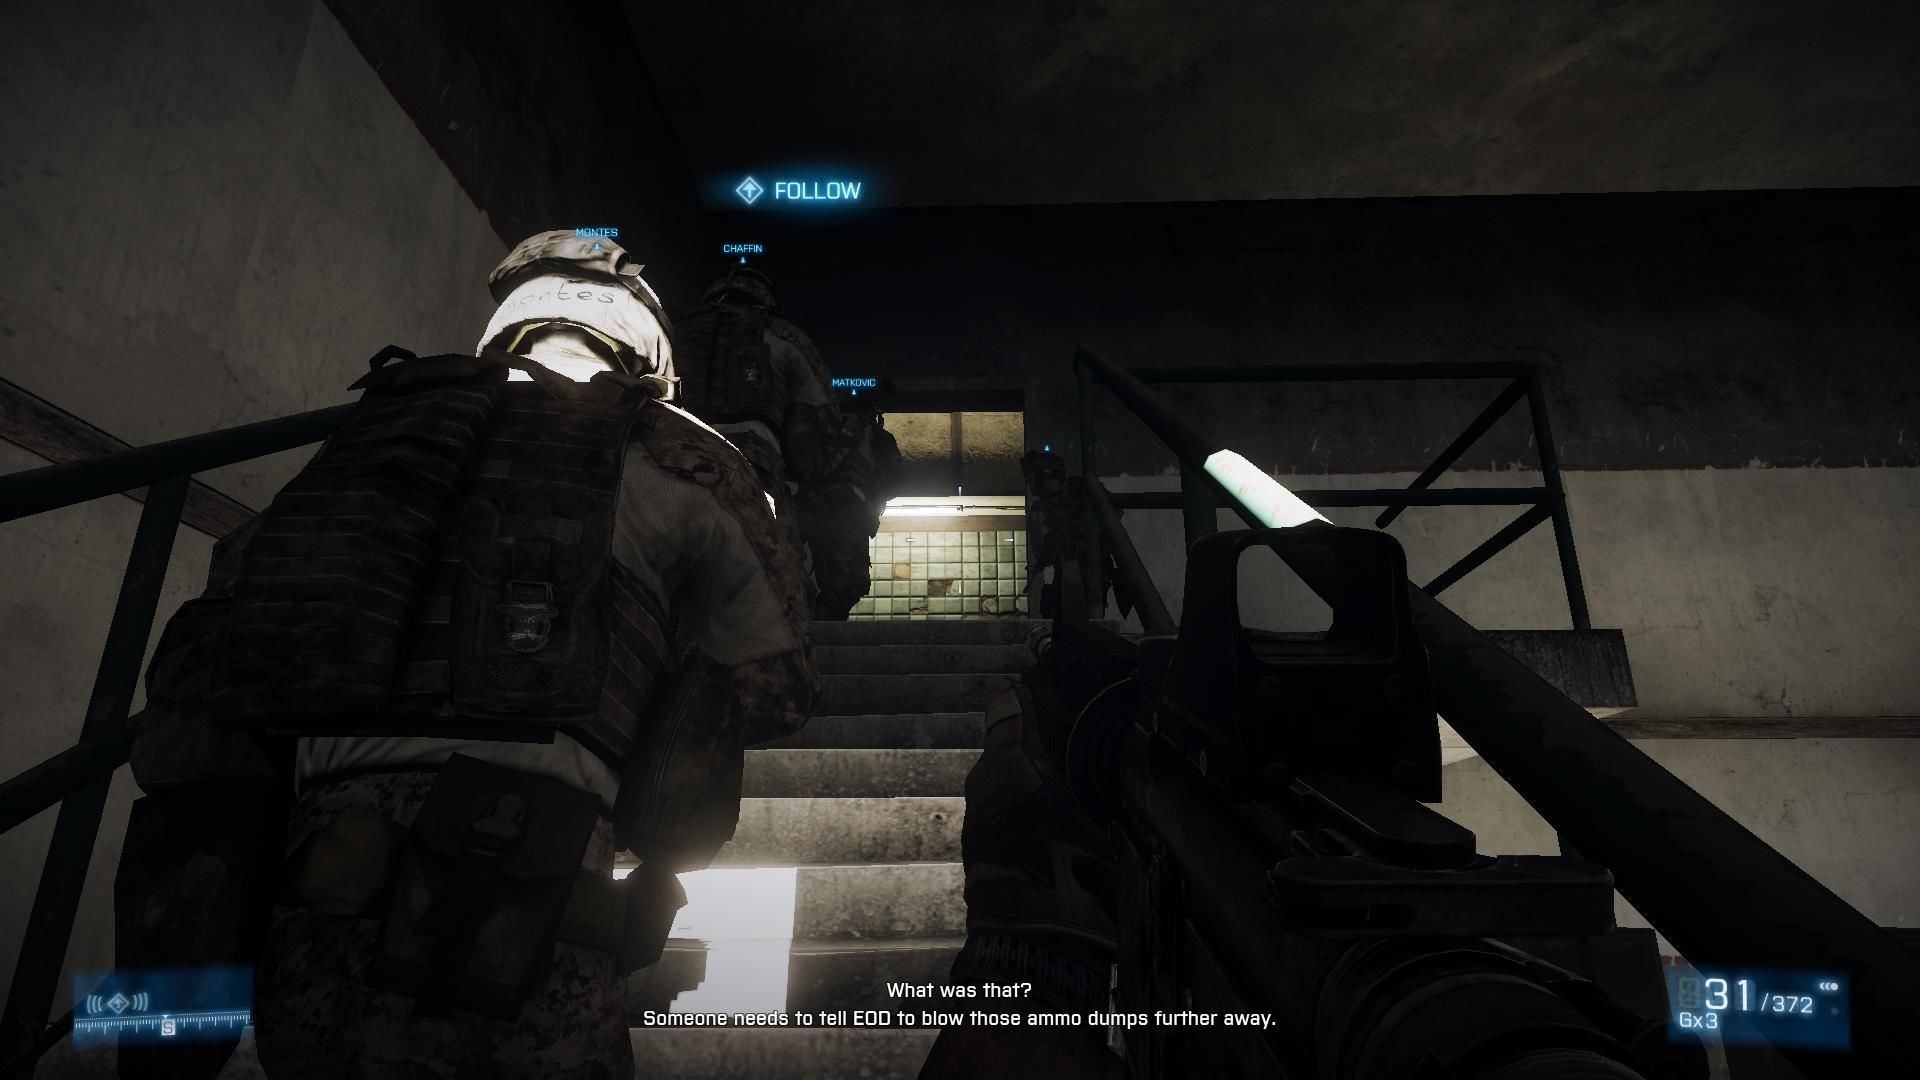 Battlefield 3 Windows Single player - stick with the guy with FOLLOW over his head